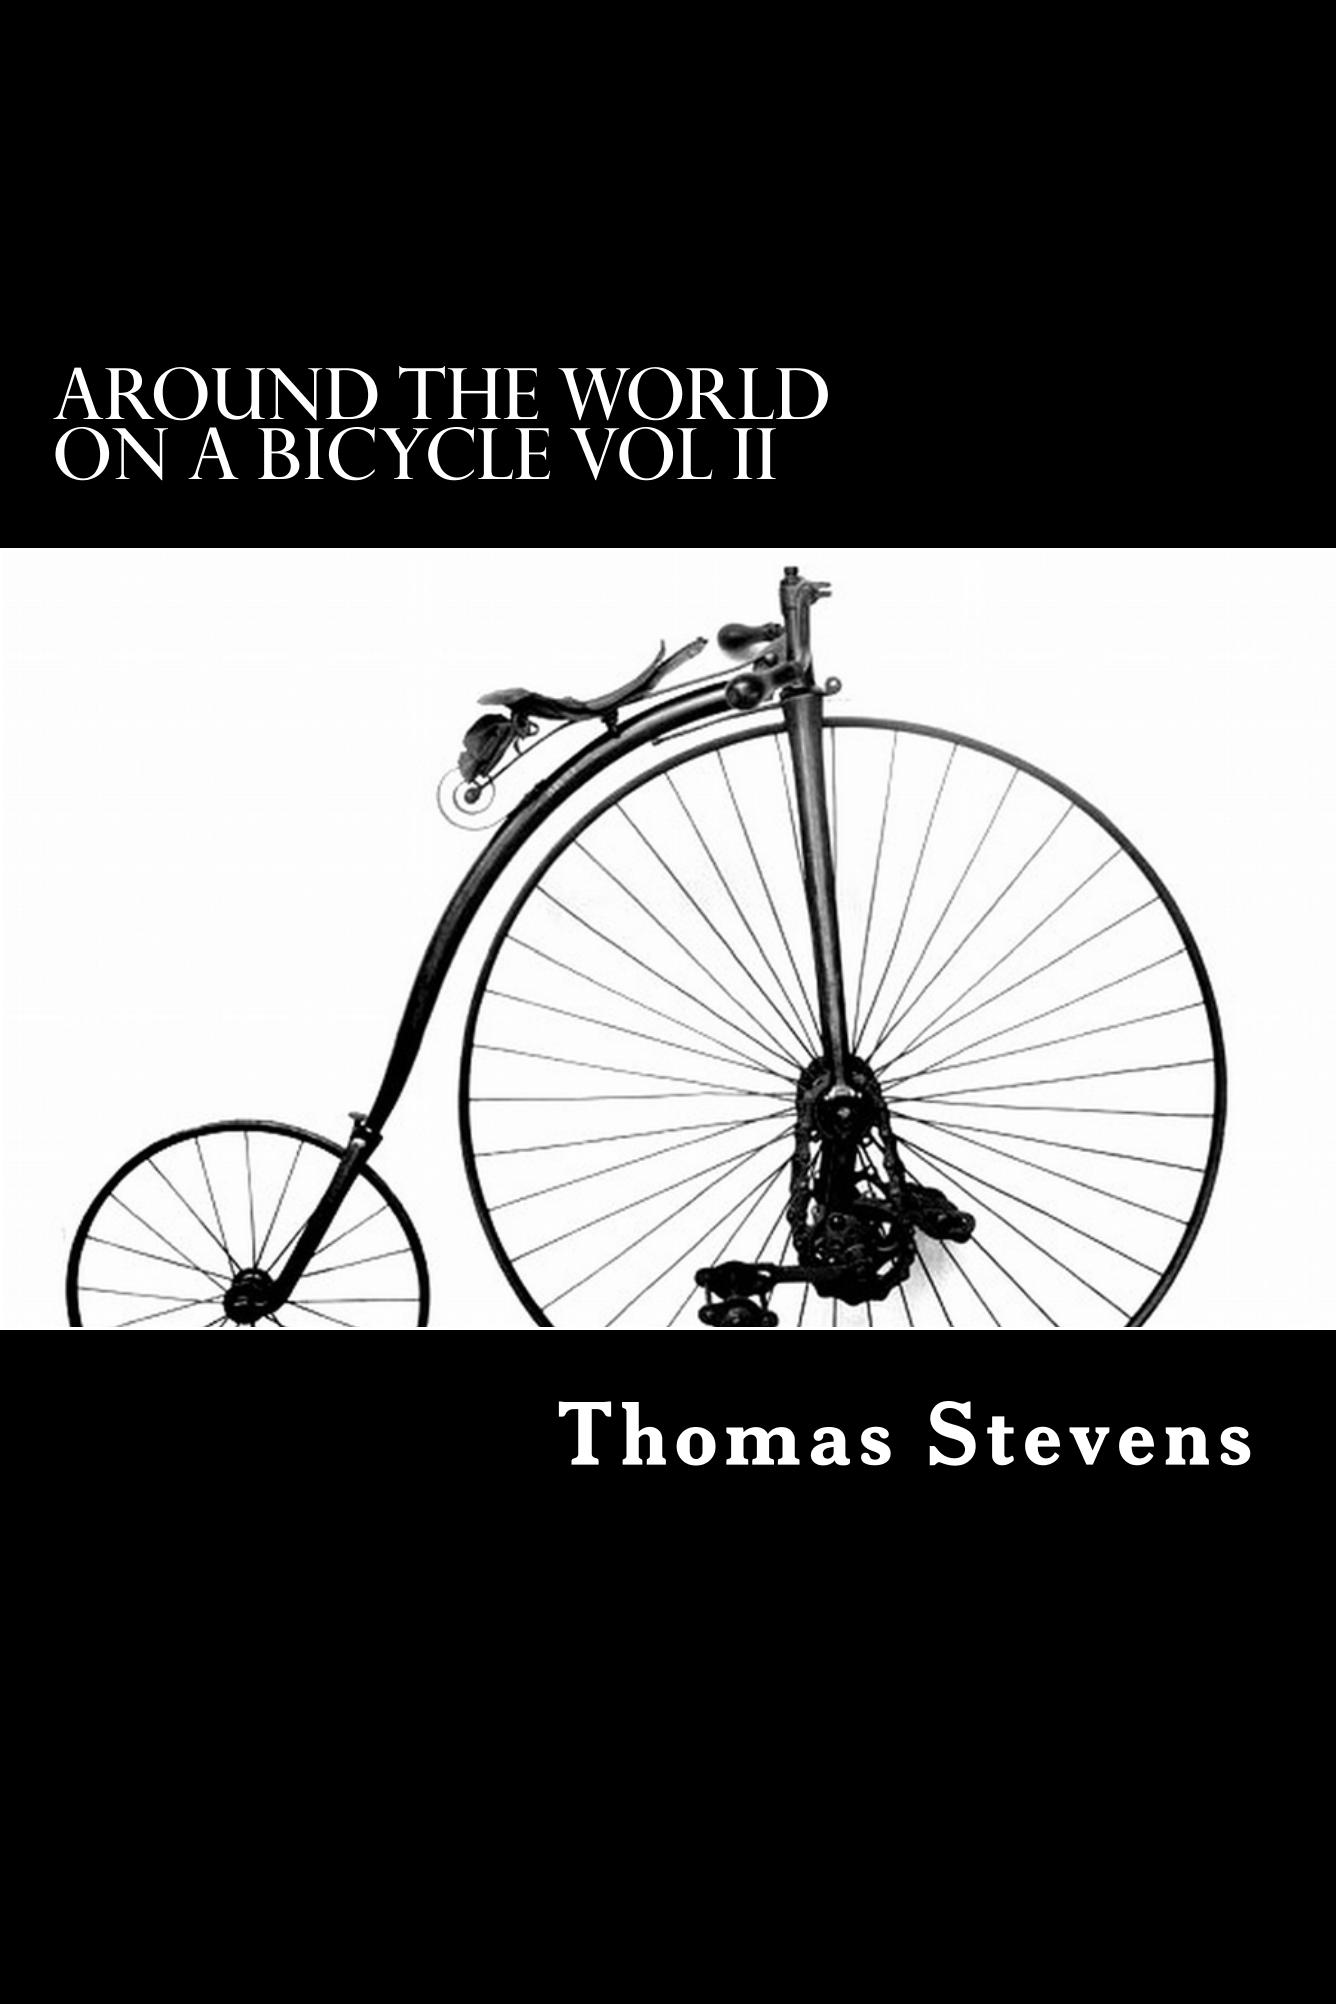 Around the World on a Bicycle Vol II